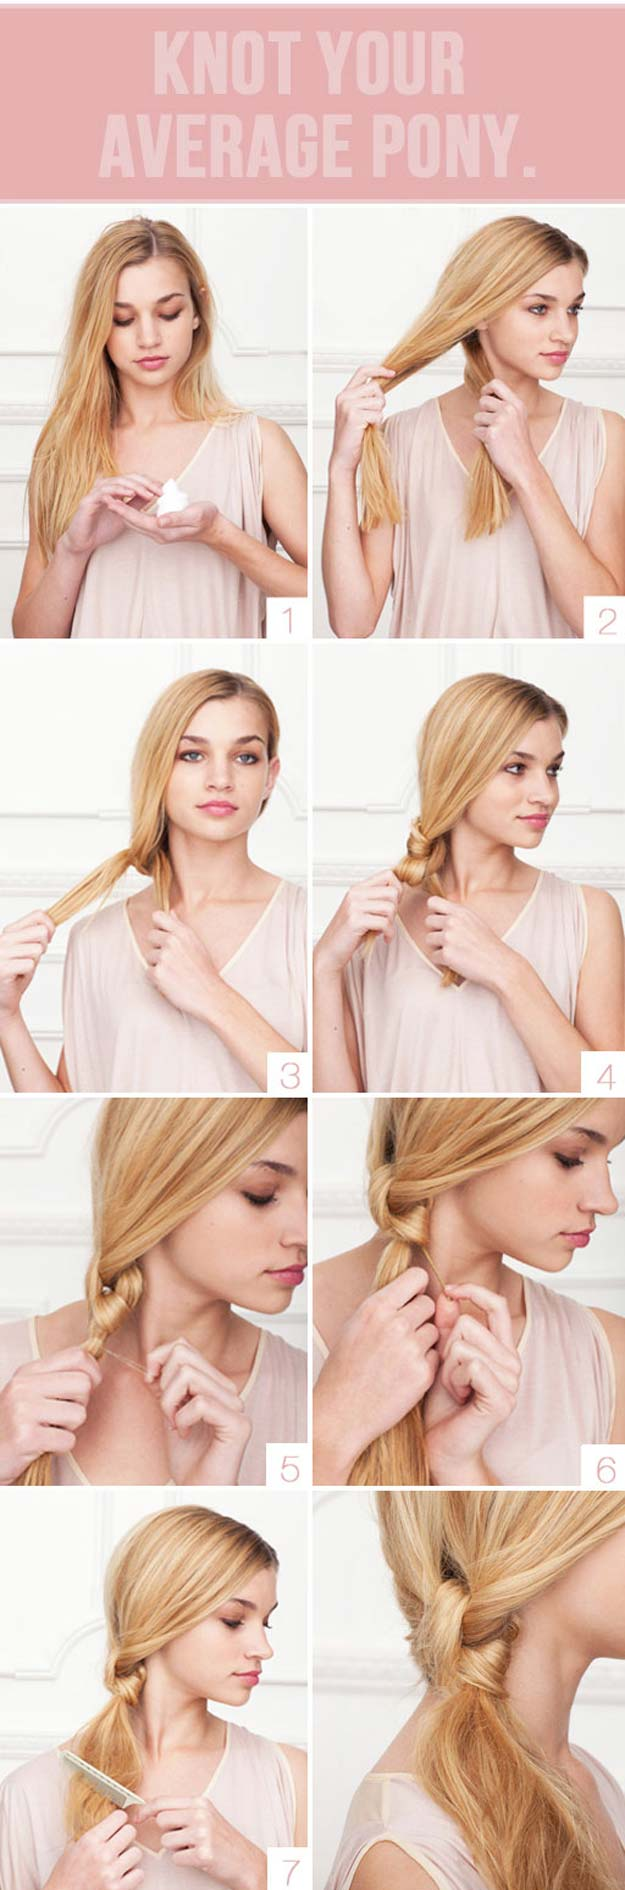 Creative DIY Hair Tutorials - Knot Your Average Pony - Color, Rainbow, Galaxy and Unique Styles for Long, Short and Medium Hair - Braids, Dyes, Instructions for Teens and Women #hairstyles #hairideas #beauty #teens #easyhairstyles